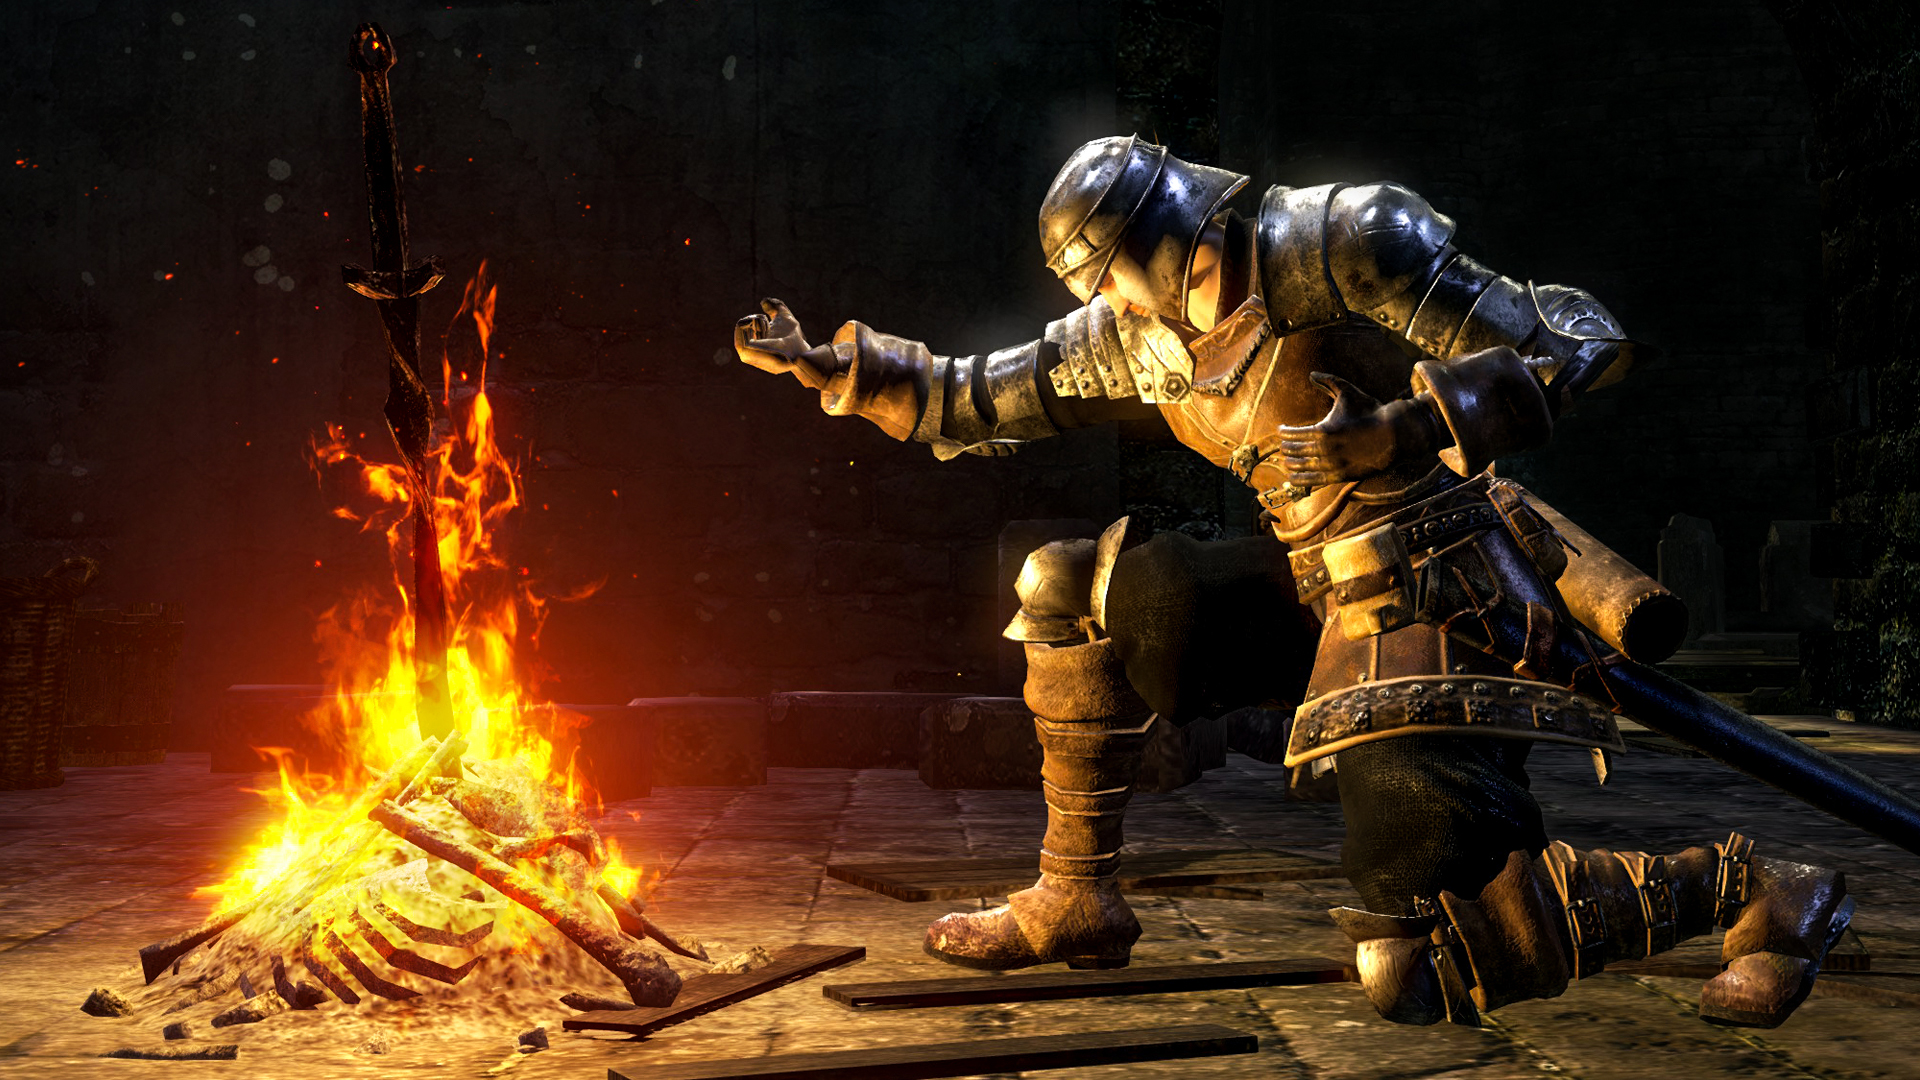 Dark Souls Remastered is the perfect jumping-on point for newcomers